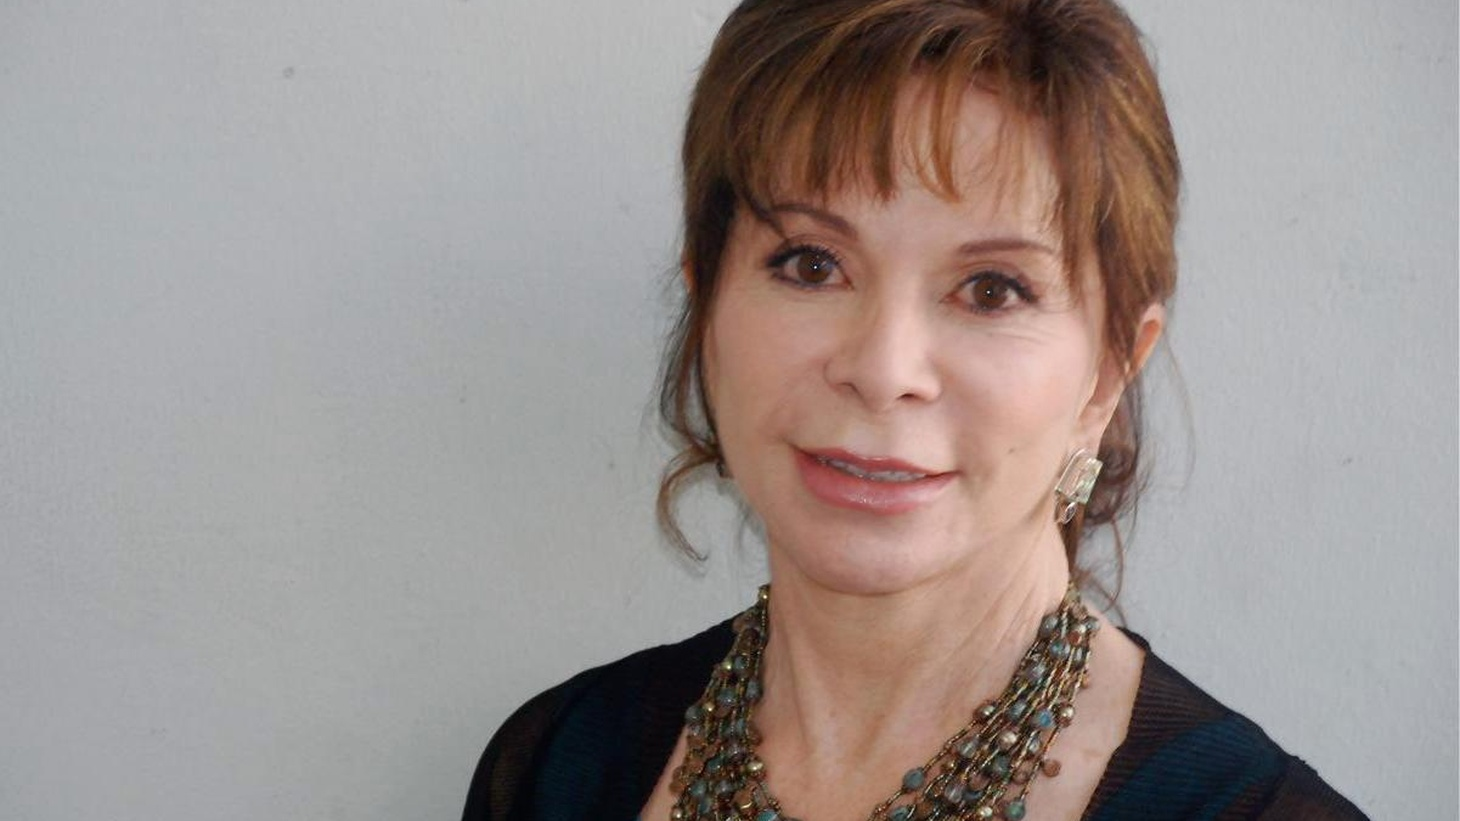 Isabel Allende's historical novel about slavery and the Haitian revolution becomes a springboard for a conversation about global injustice and the re-emergence of slavery.